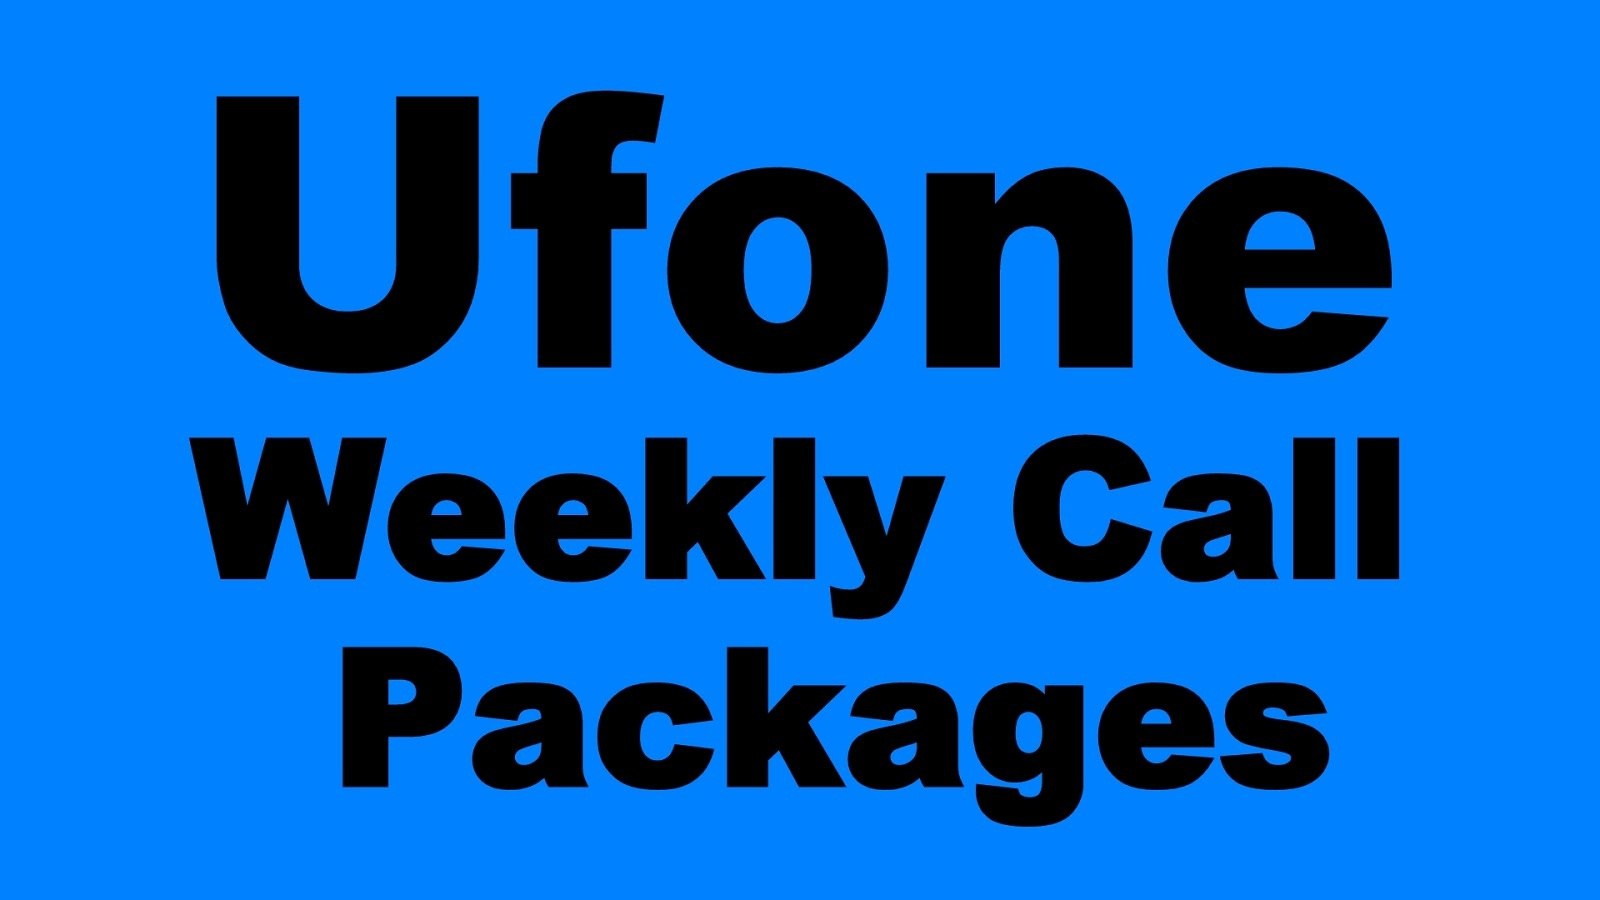 https://ntsresults.org/ufone-one-day-call-package/